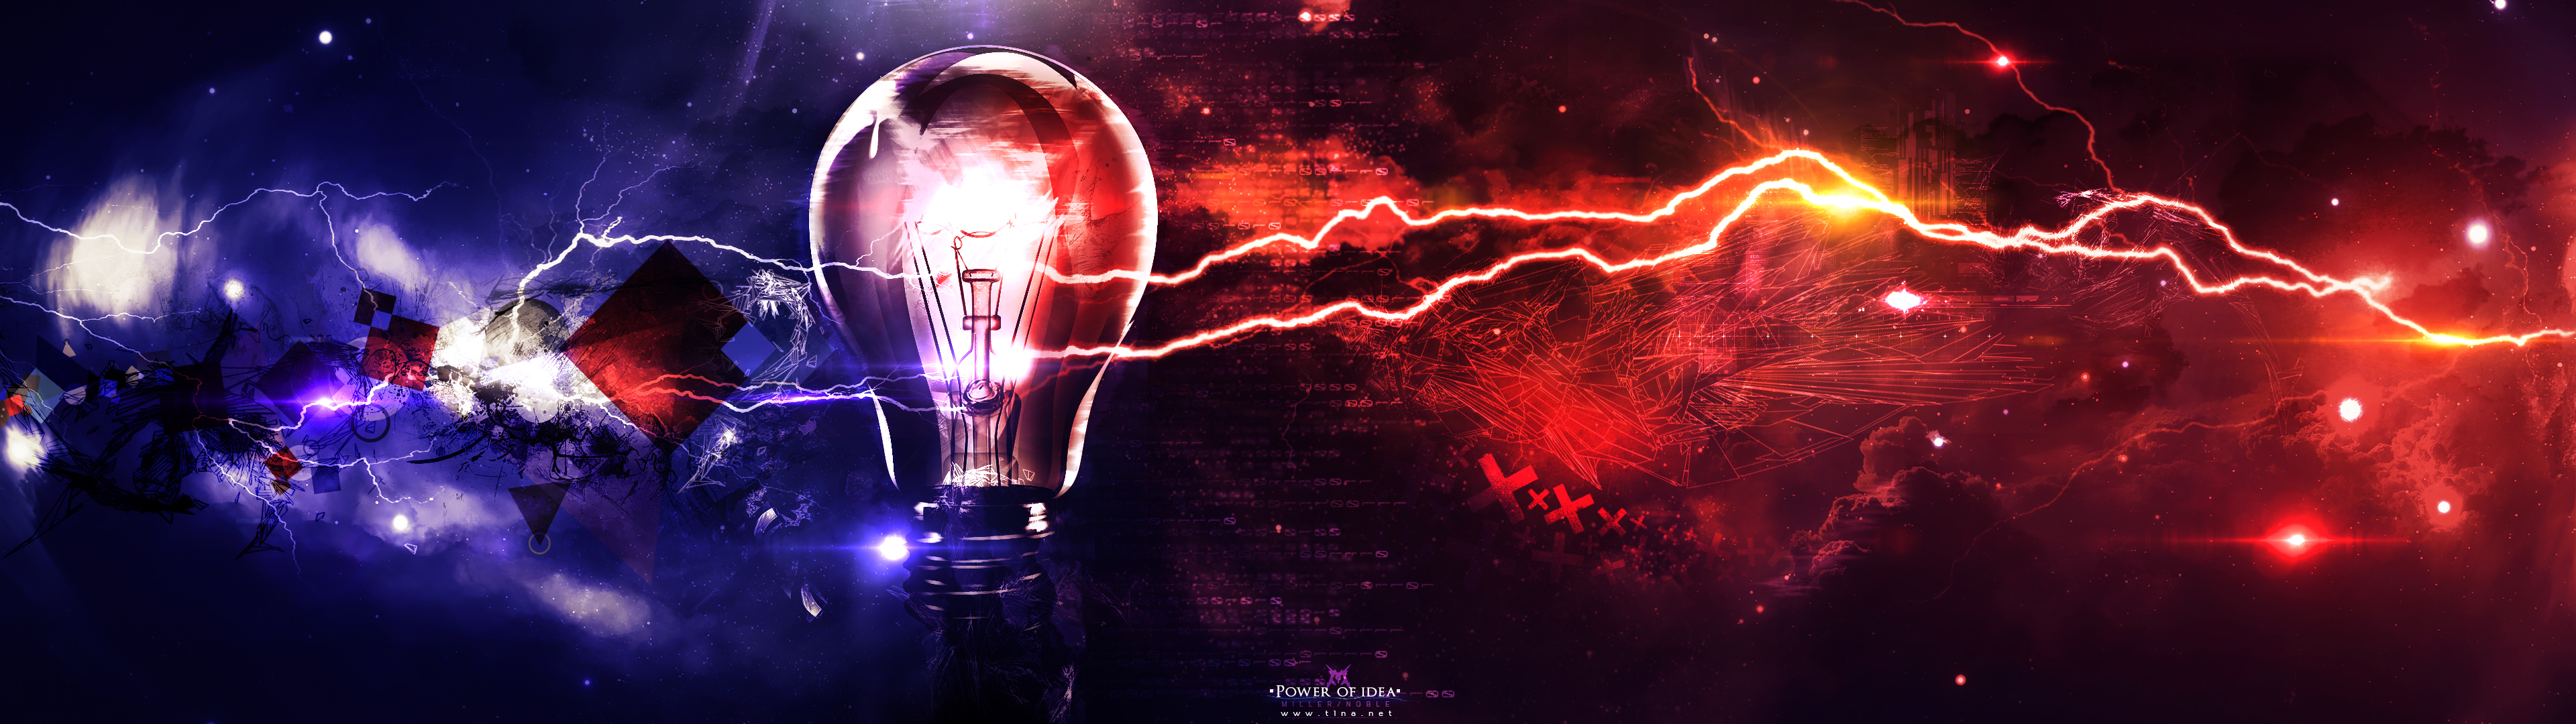 power of idea by t1na on deviantart